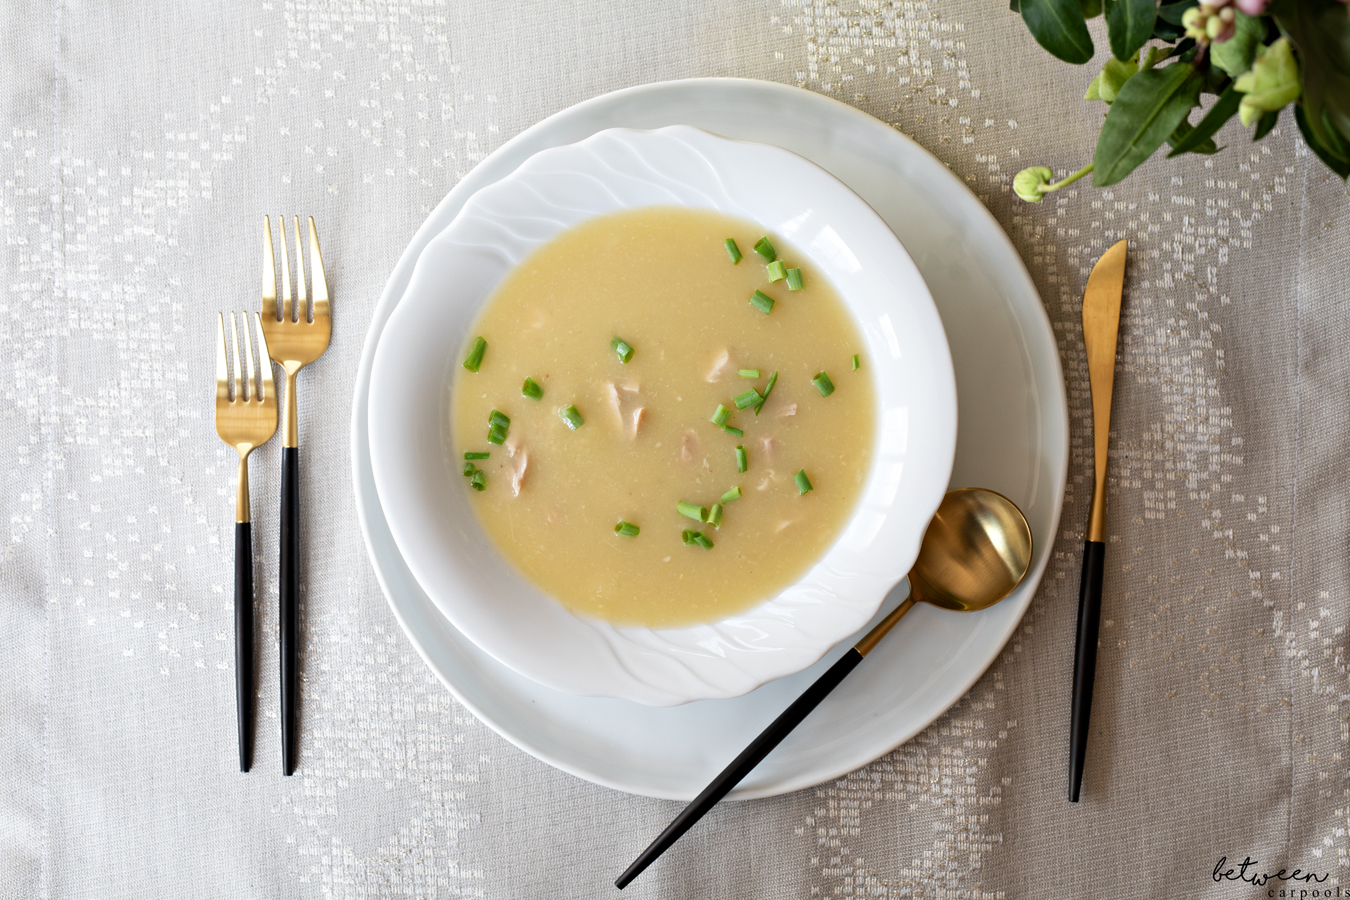 Haven't you always wanted a recipe for a good cream of chicken soup? No need to wait any longer...this is the soup everyone in the family just loves.